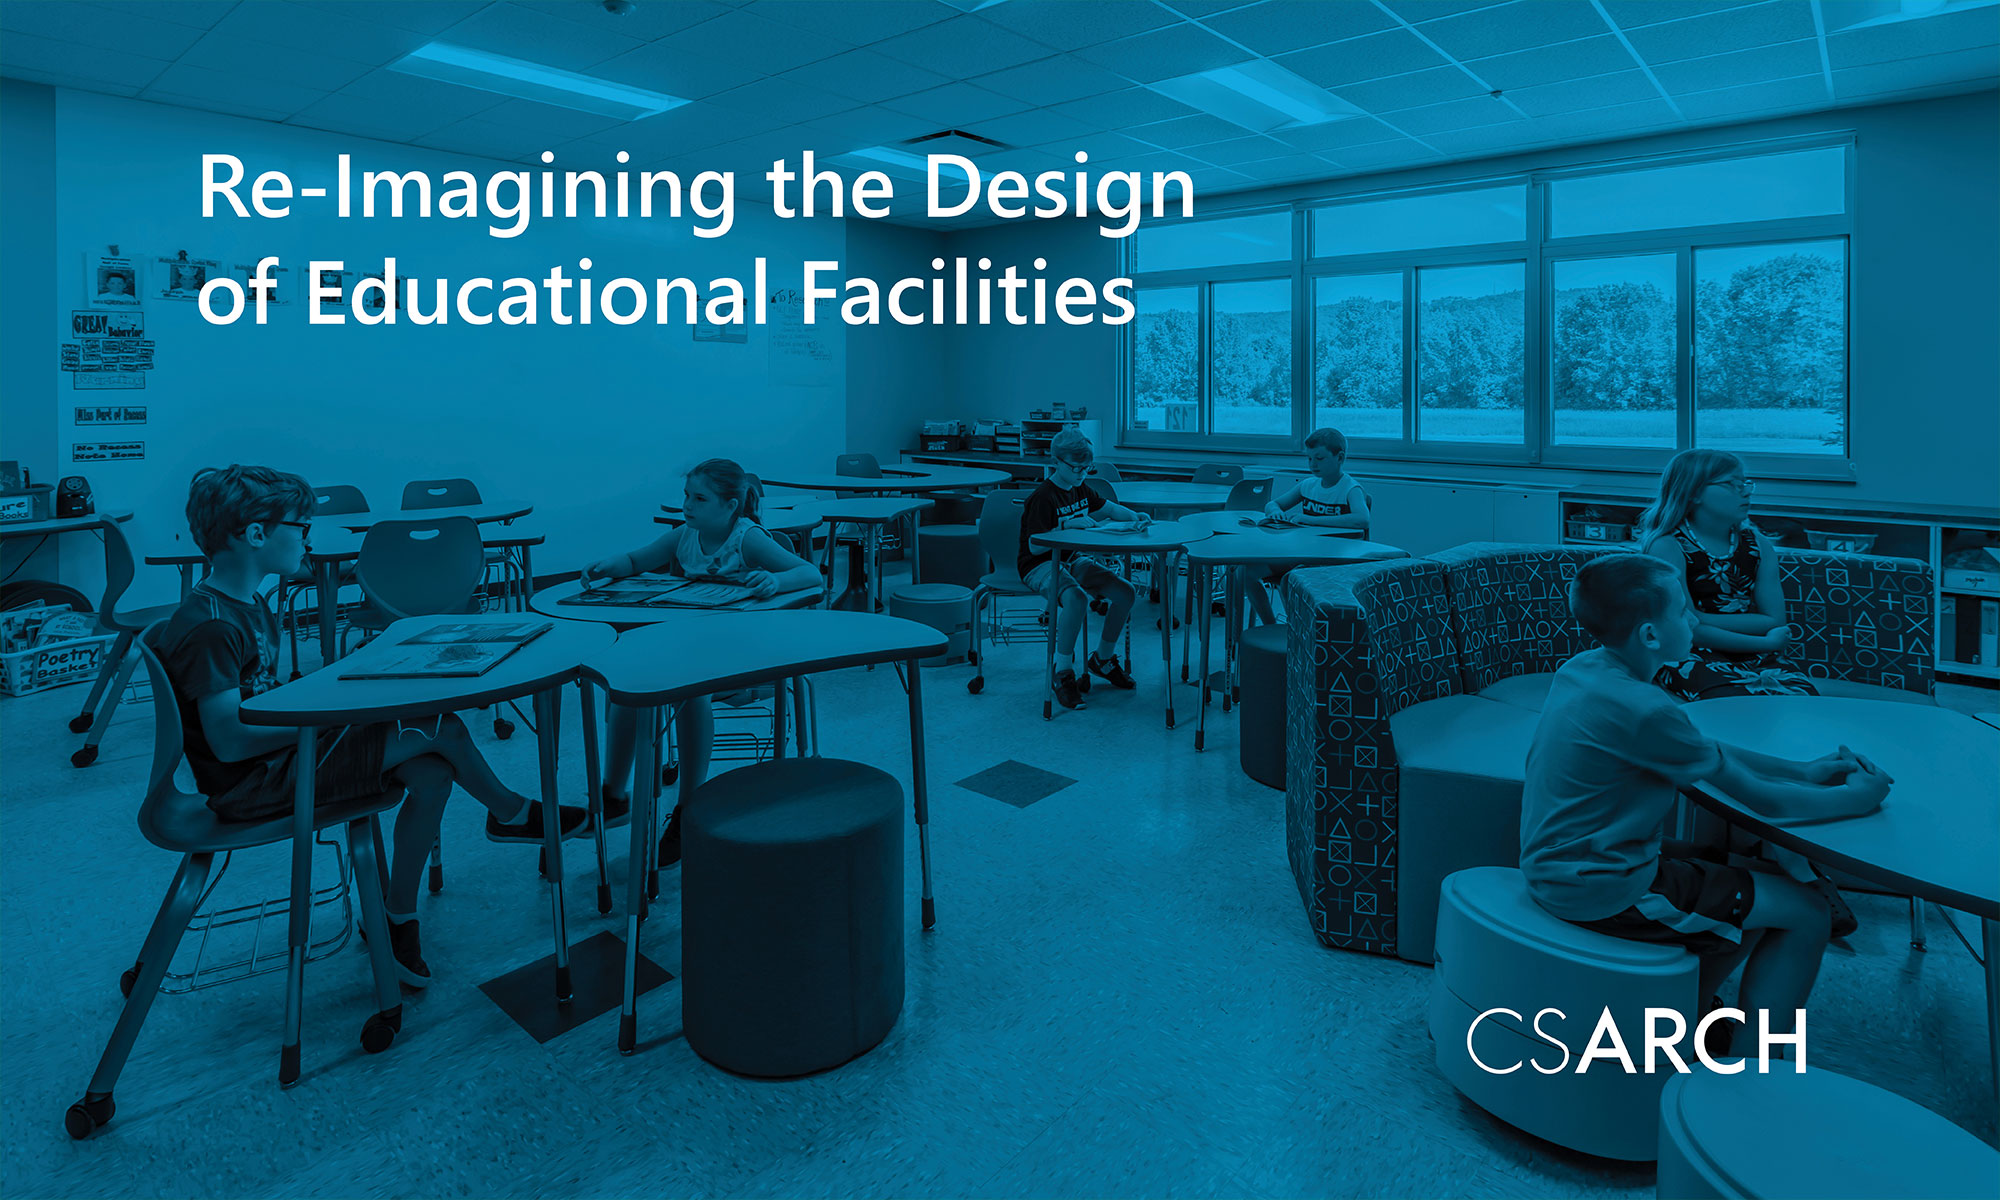 Post-Coronavirus: Re-Imagining the Design of Educational Facilities